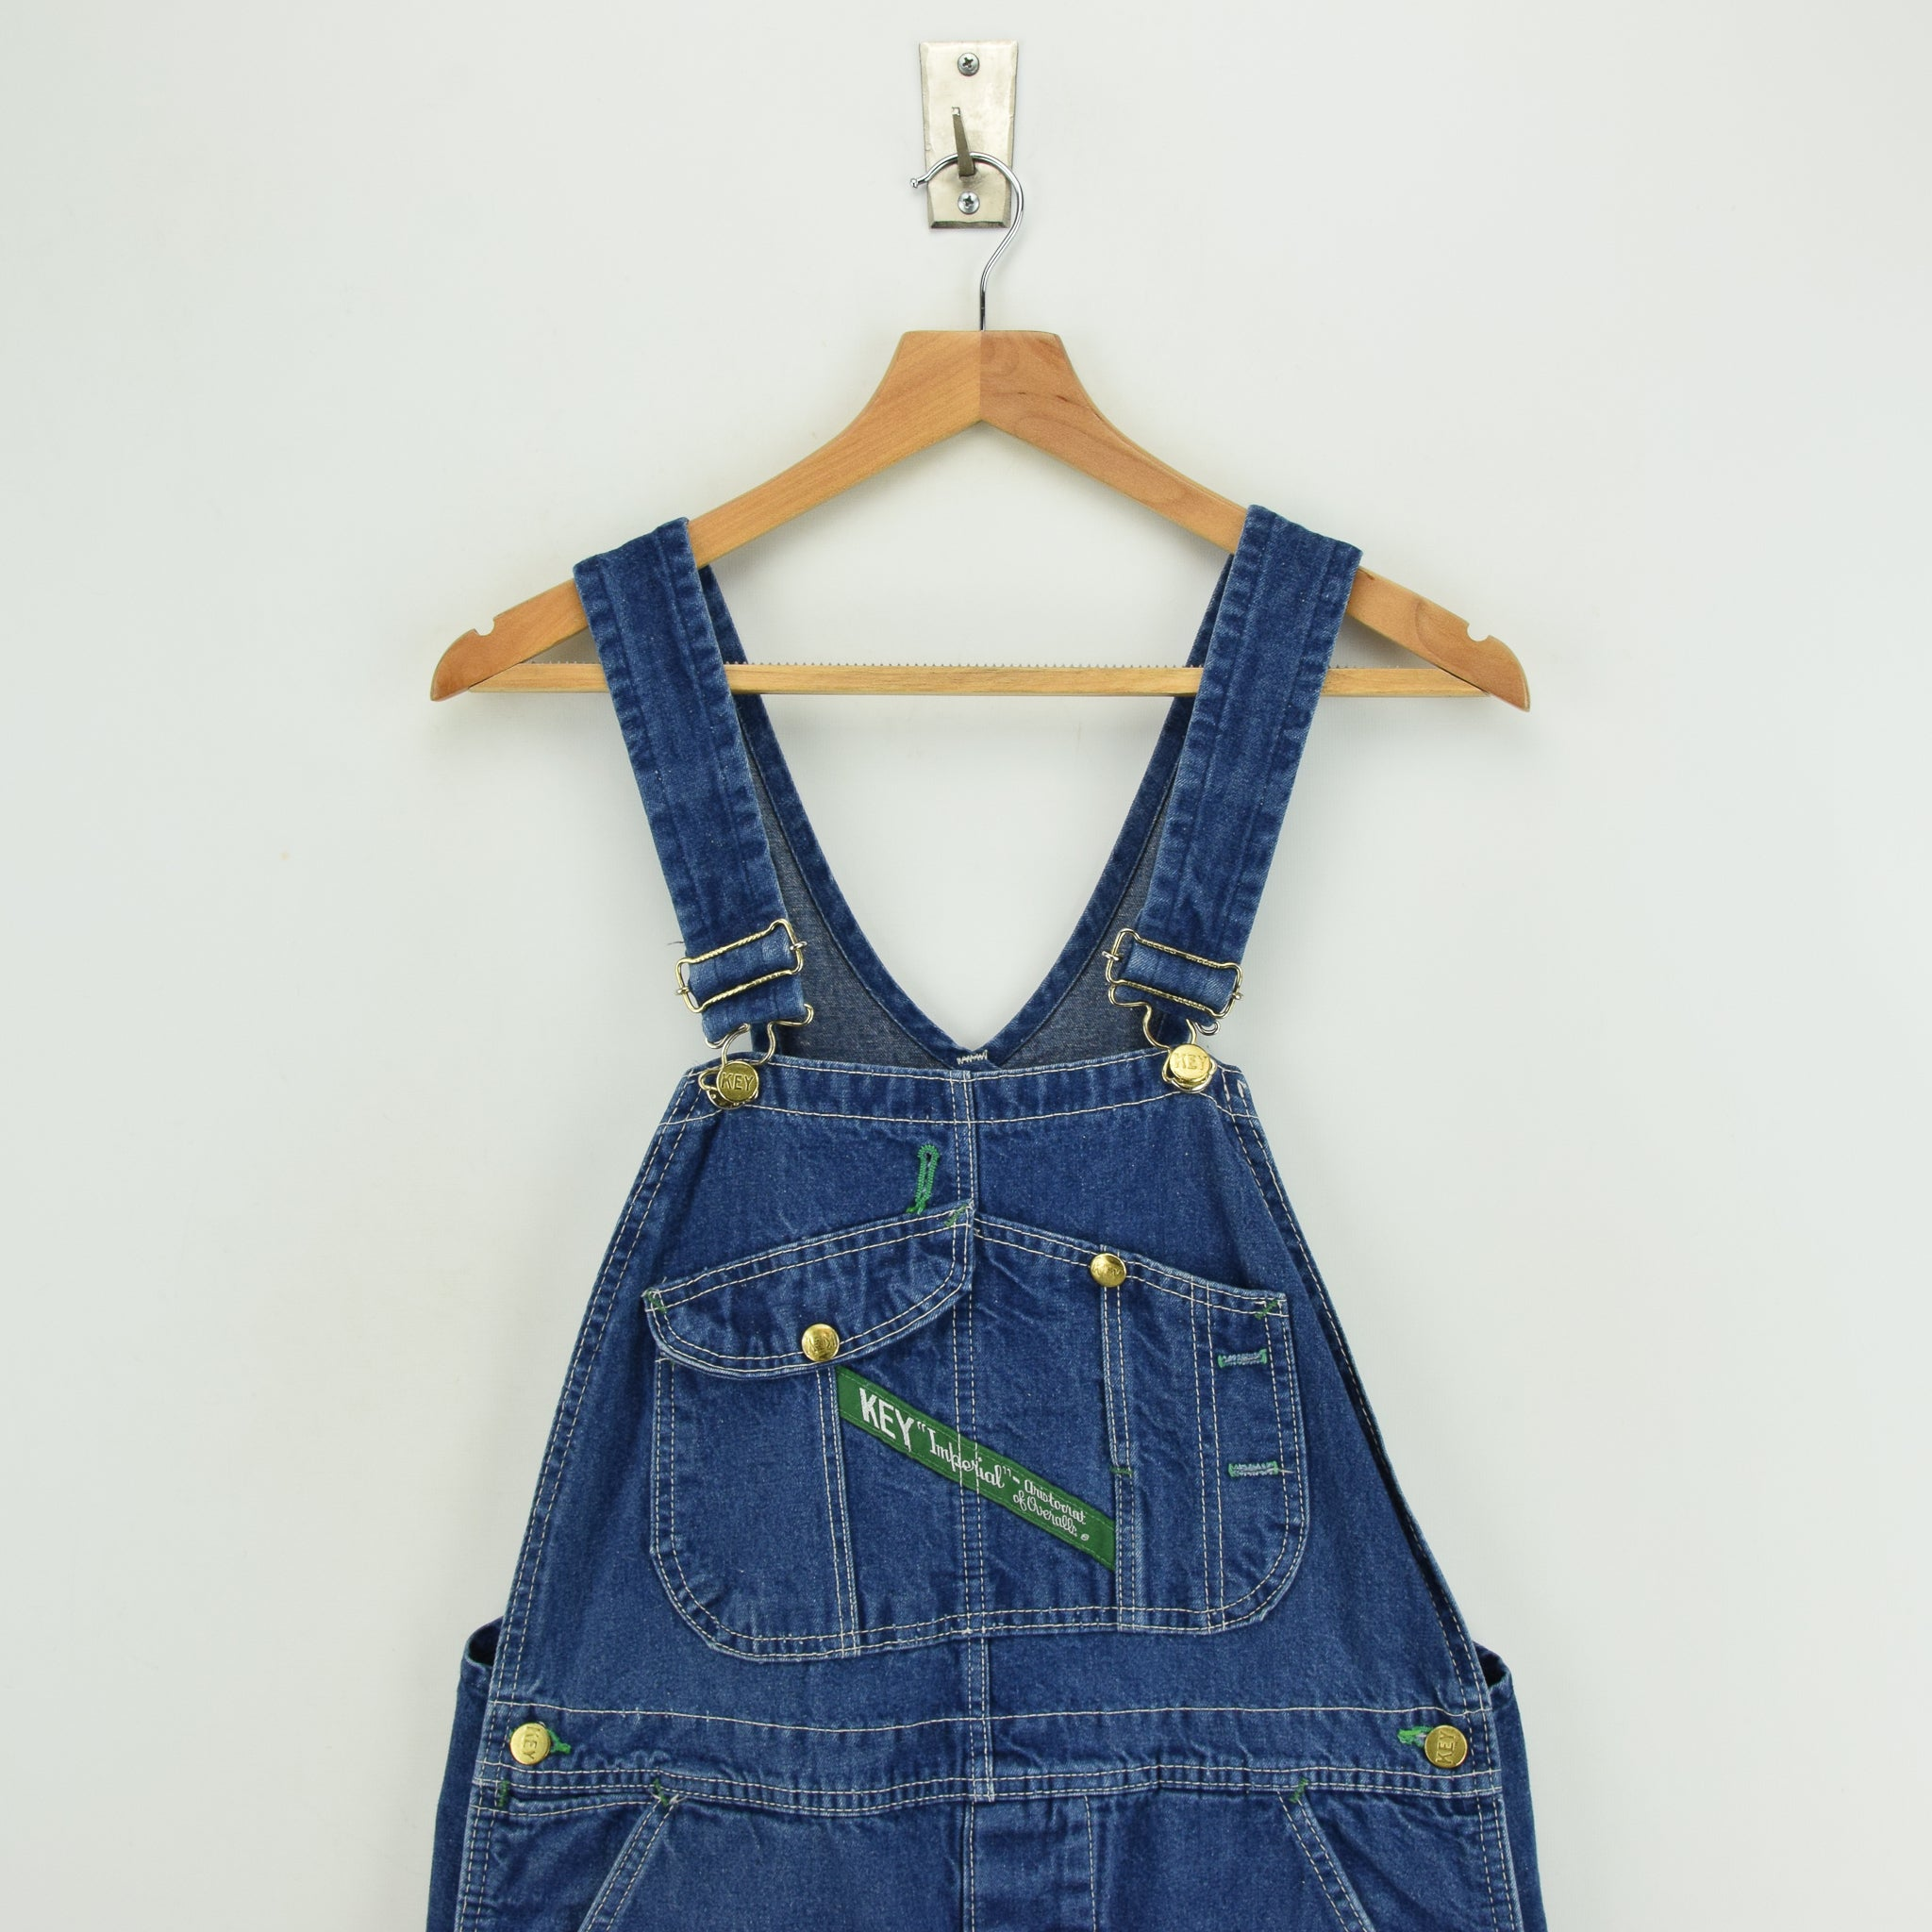 Vintage Key Imperial Aristocrat of Overalls Blue Denim Work Dungarees 34 W 31 L chest